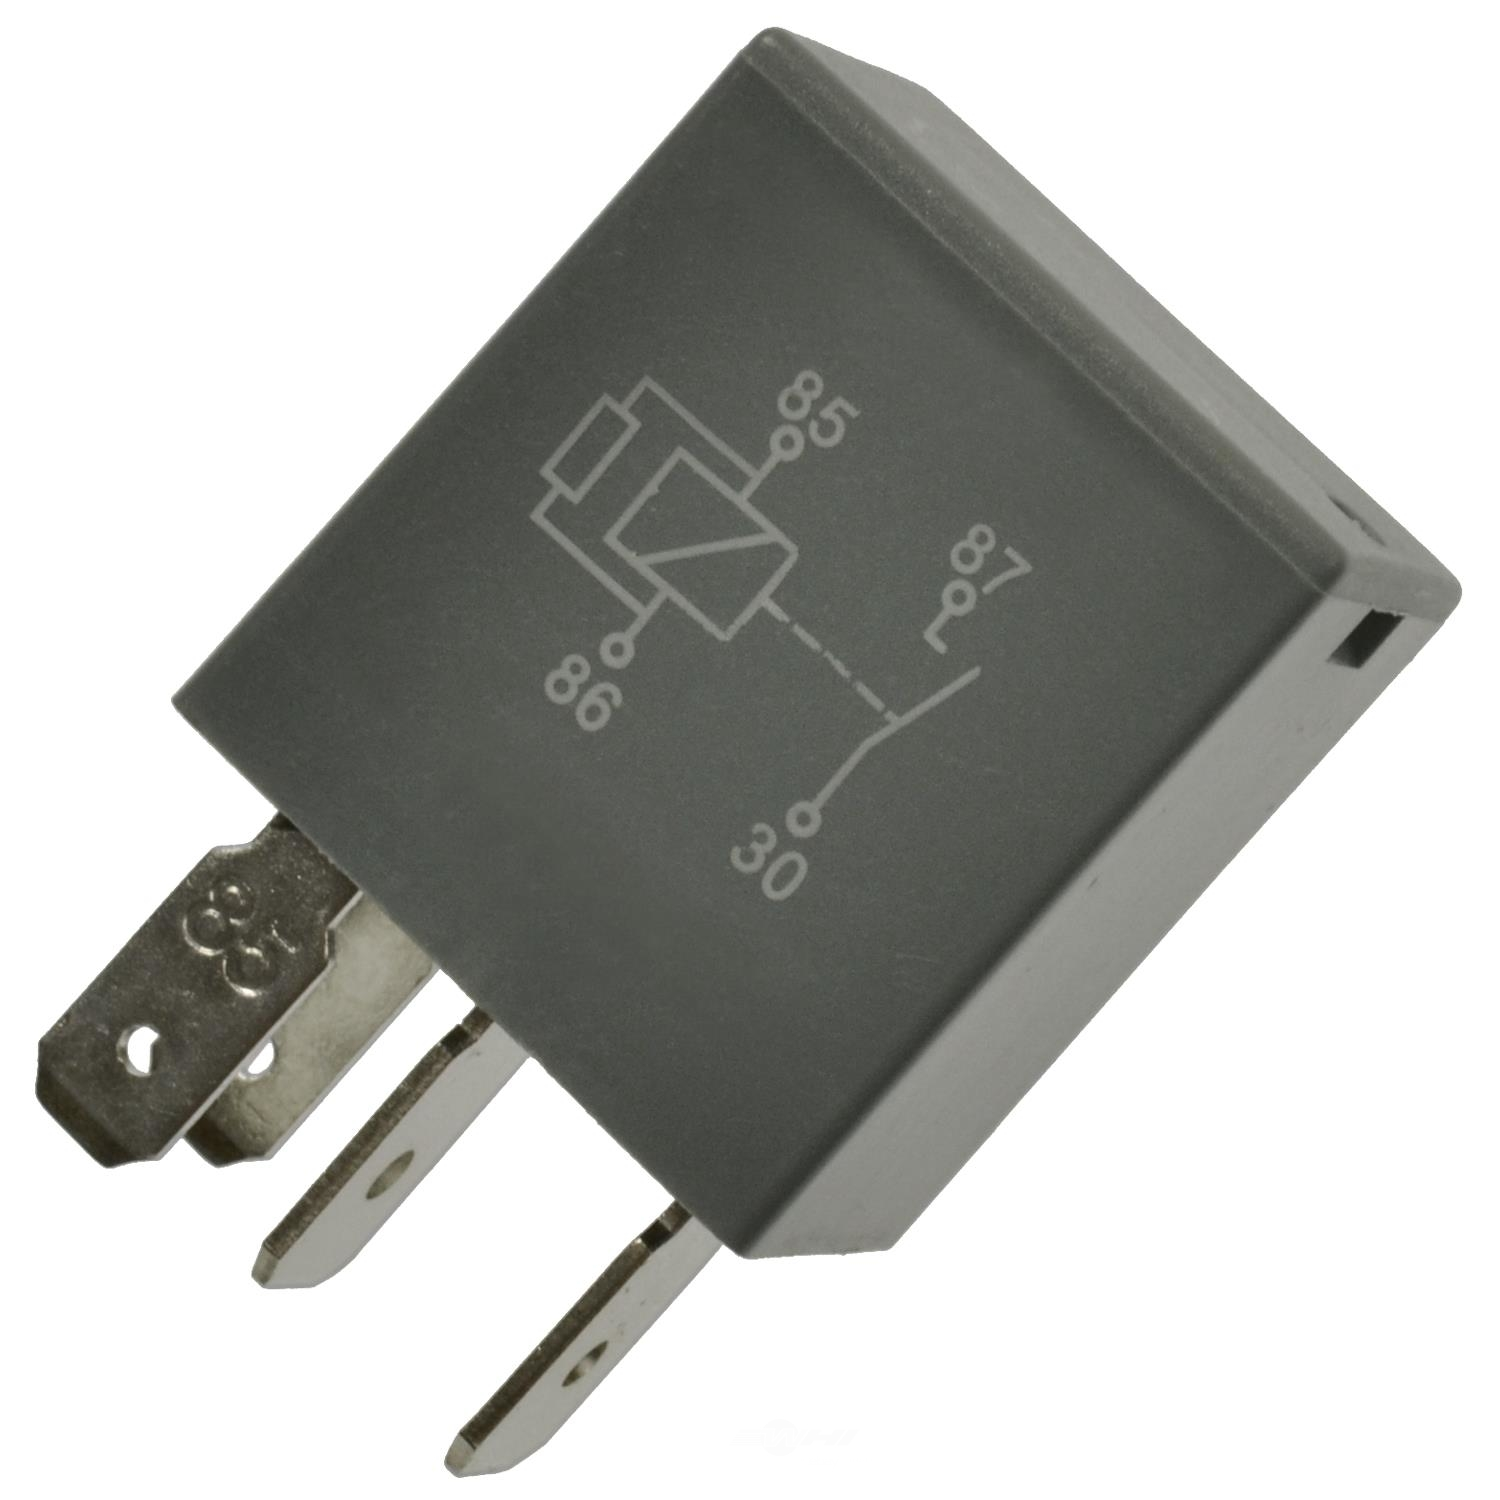 STANDARD T-SERIES - Power Window Relay - STT RY302T